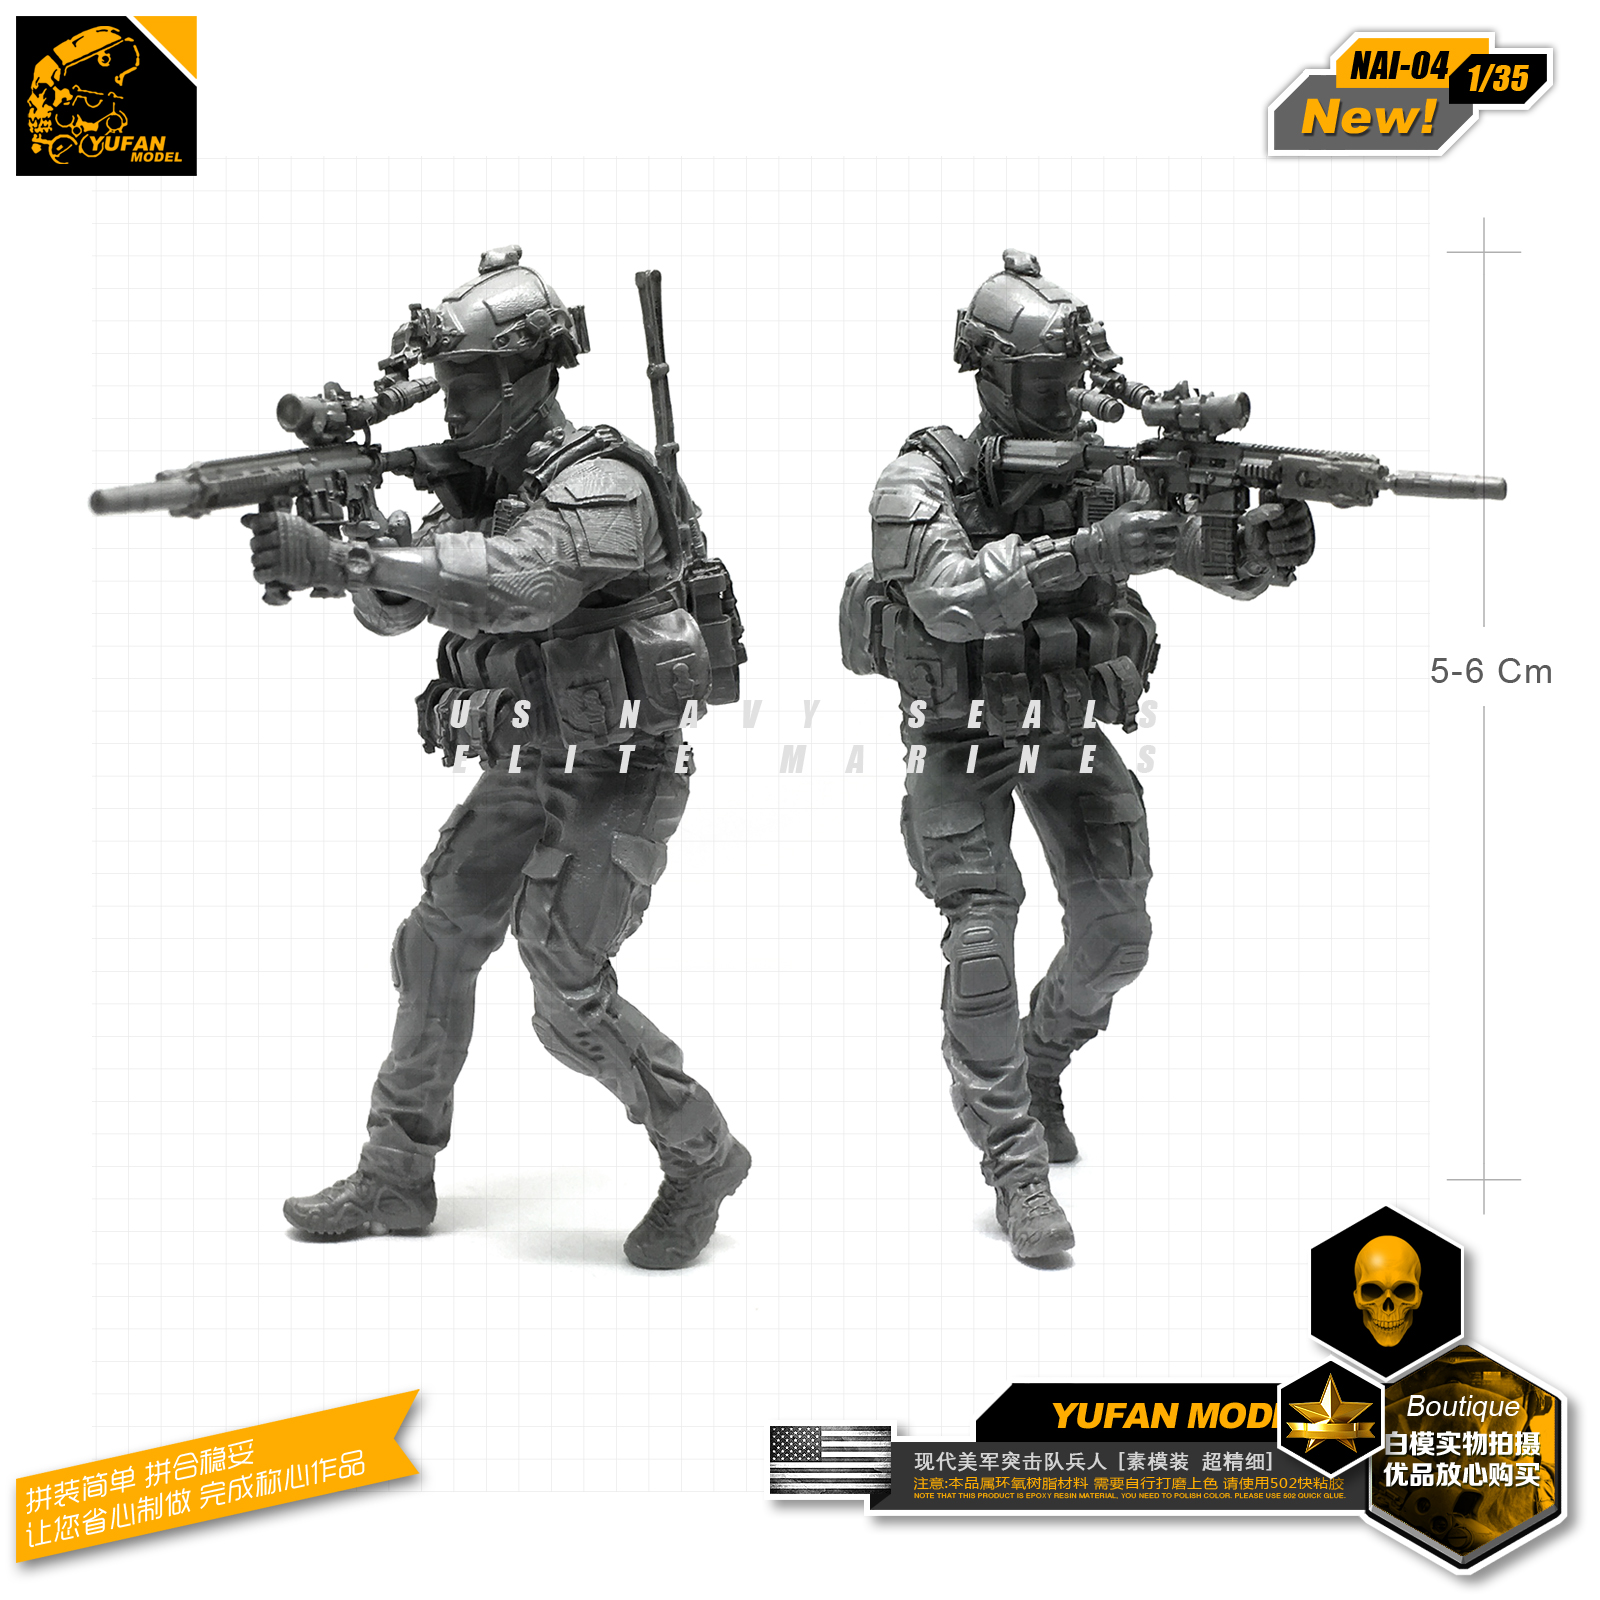 Yufan Model <font><b>1/35</b></font> Figure Model Kits Modern American Commando <font><b>Resin</b></font> Soldier Model Unmounted <font><b>Accessories</b></font> Nai-04 image